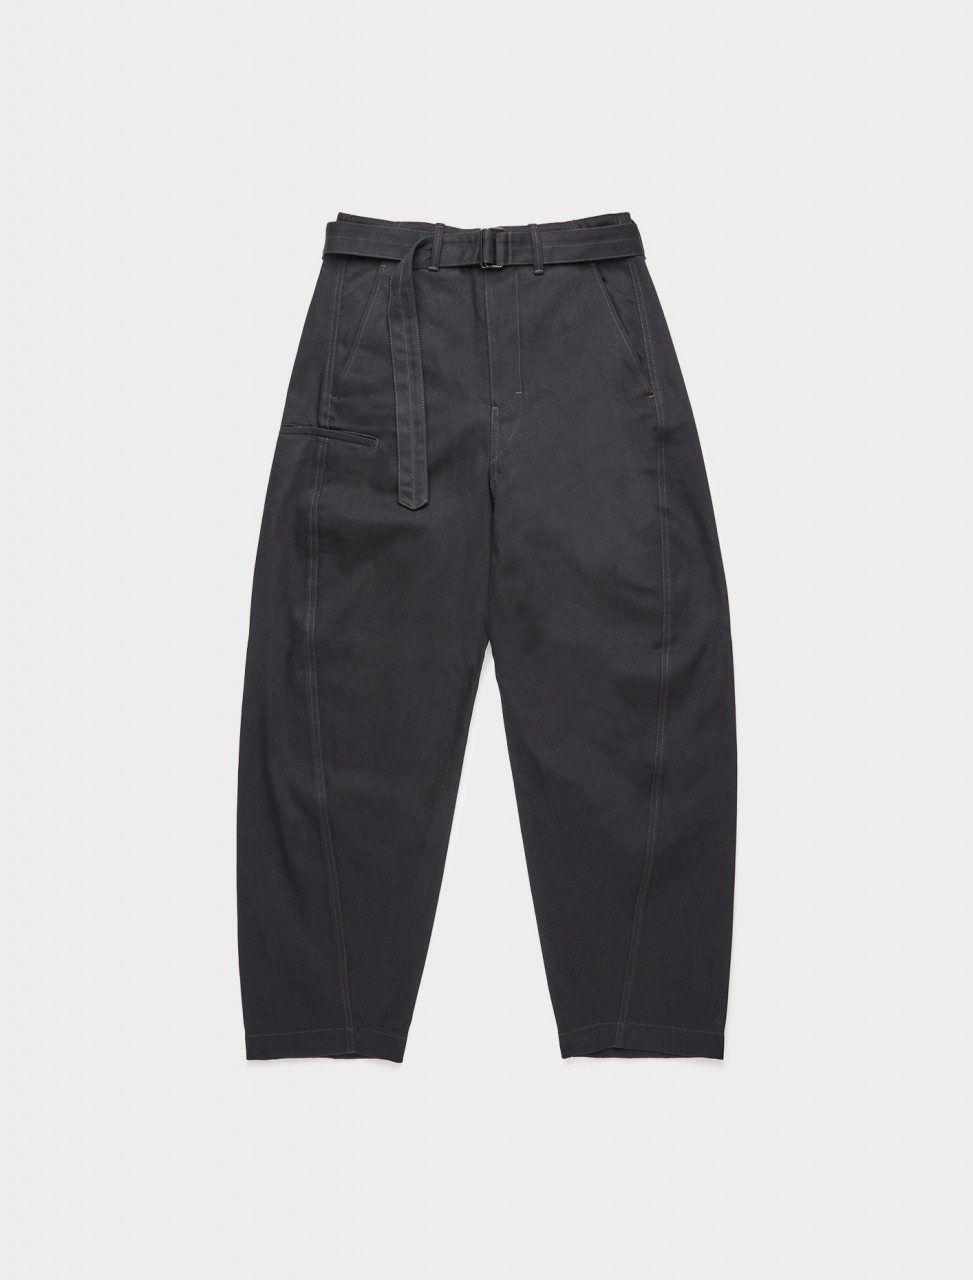 218-M-203-PA137-LD049-999 LEMAIRE TWISTED TROUSER BLACK